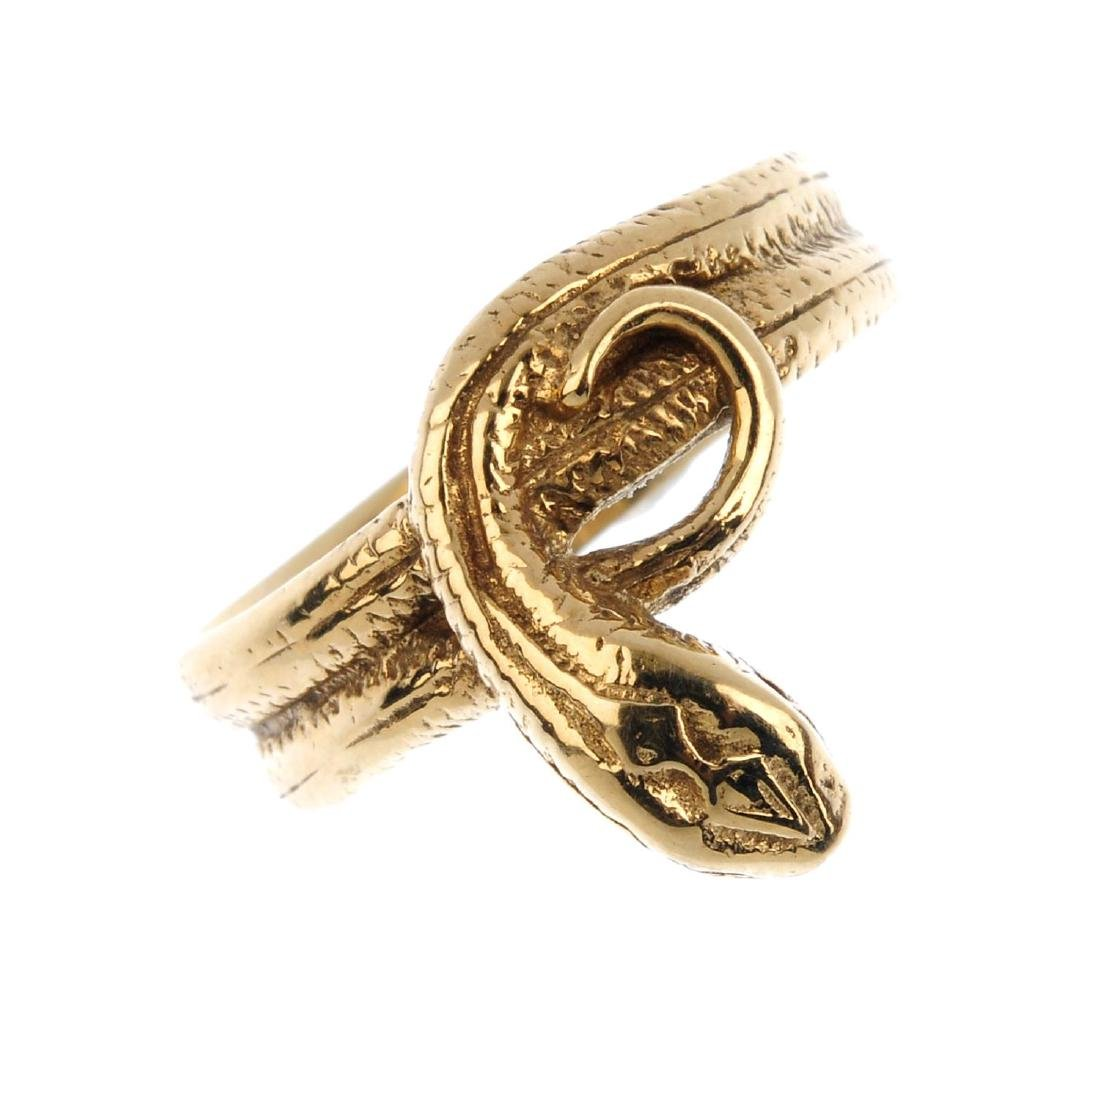 A 9ct gold snake ring. Designed as a coiled snake, with